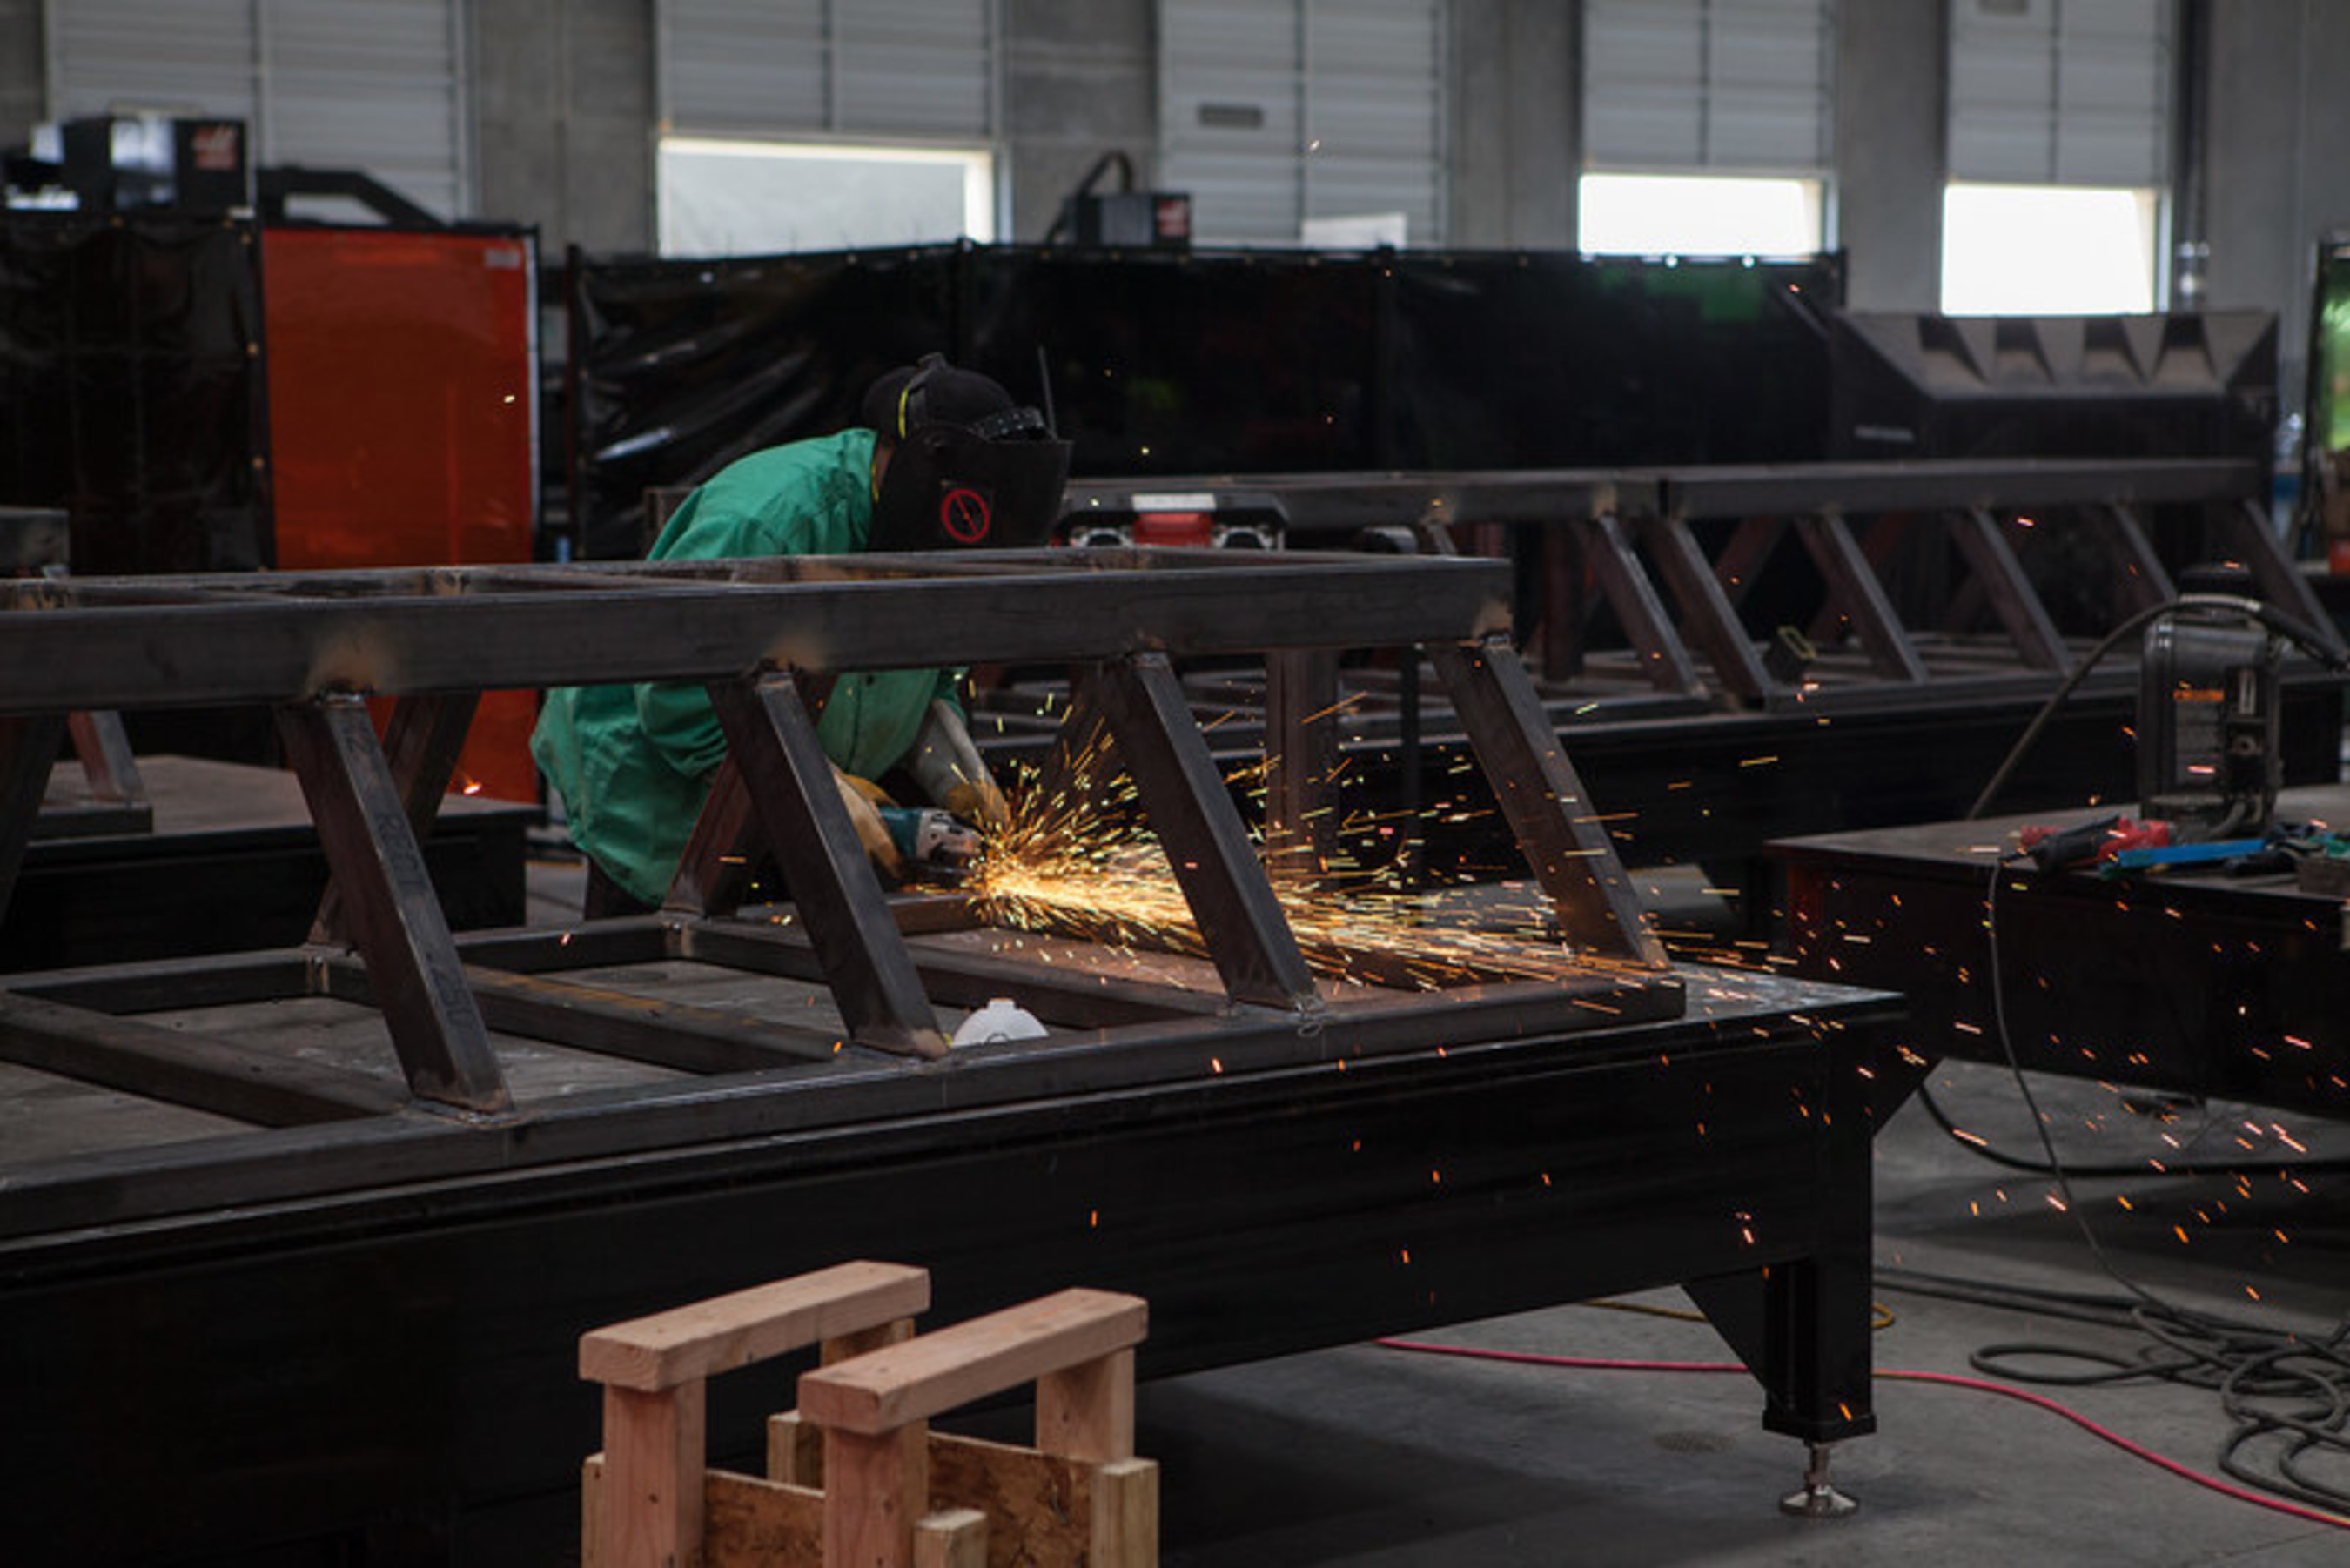 Hyperloop One Announces the Opening of Hyperloop One Metalworks: The First Hyperloop Manufacturing Plant in the World